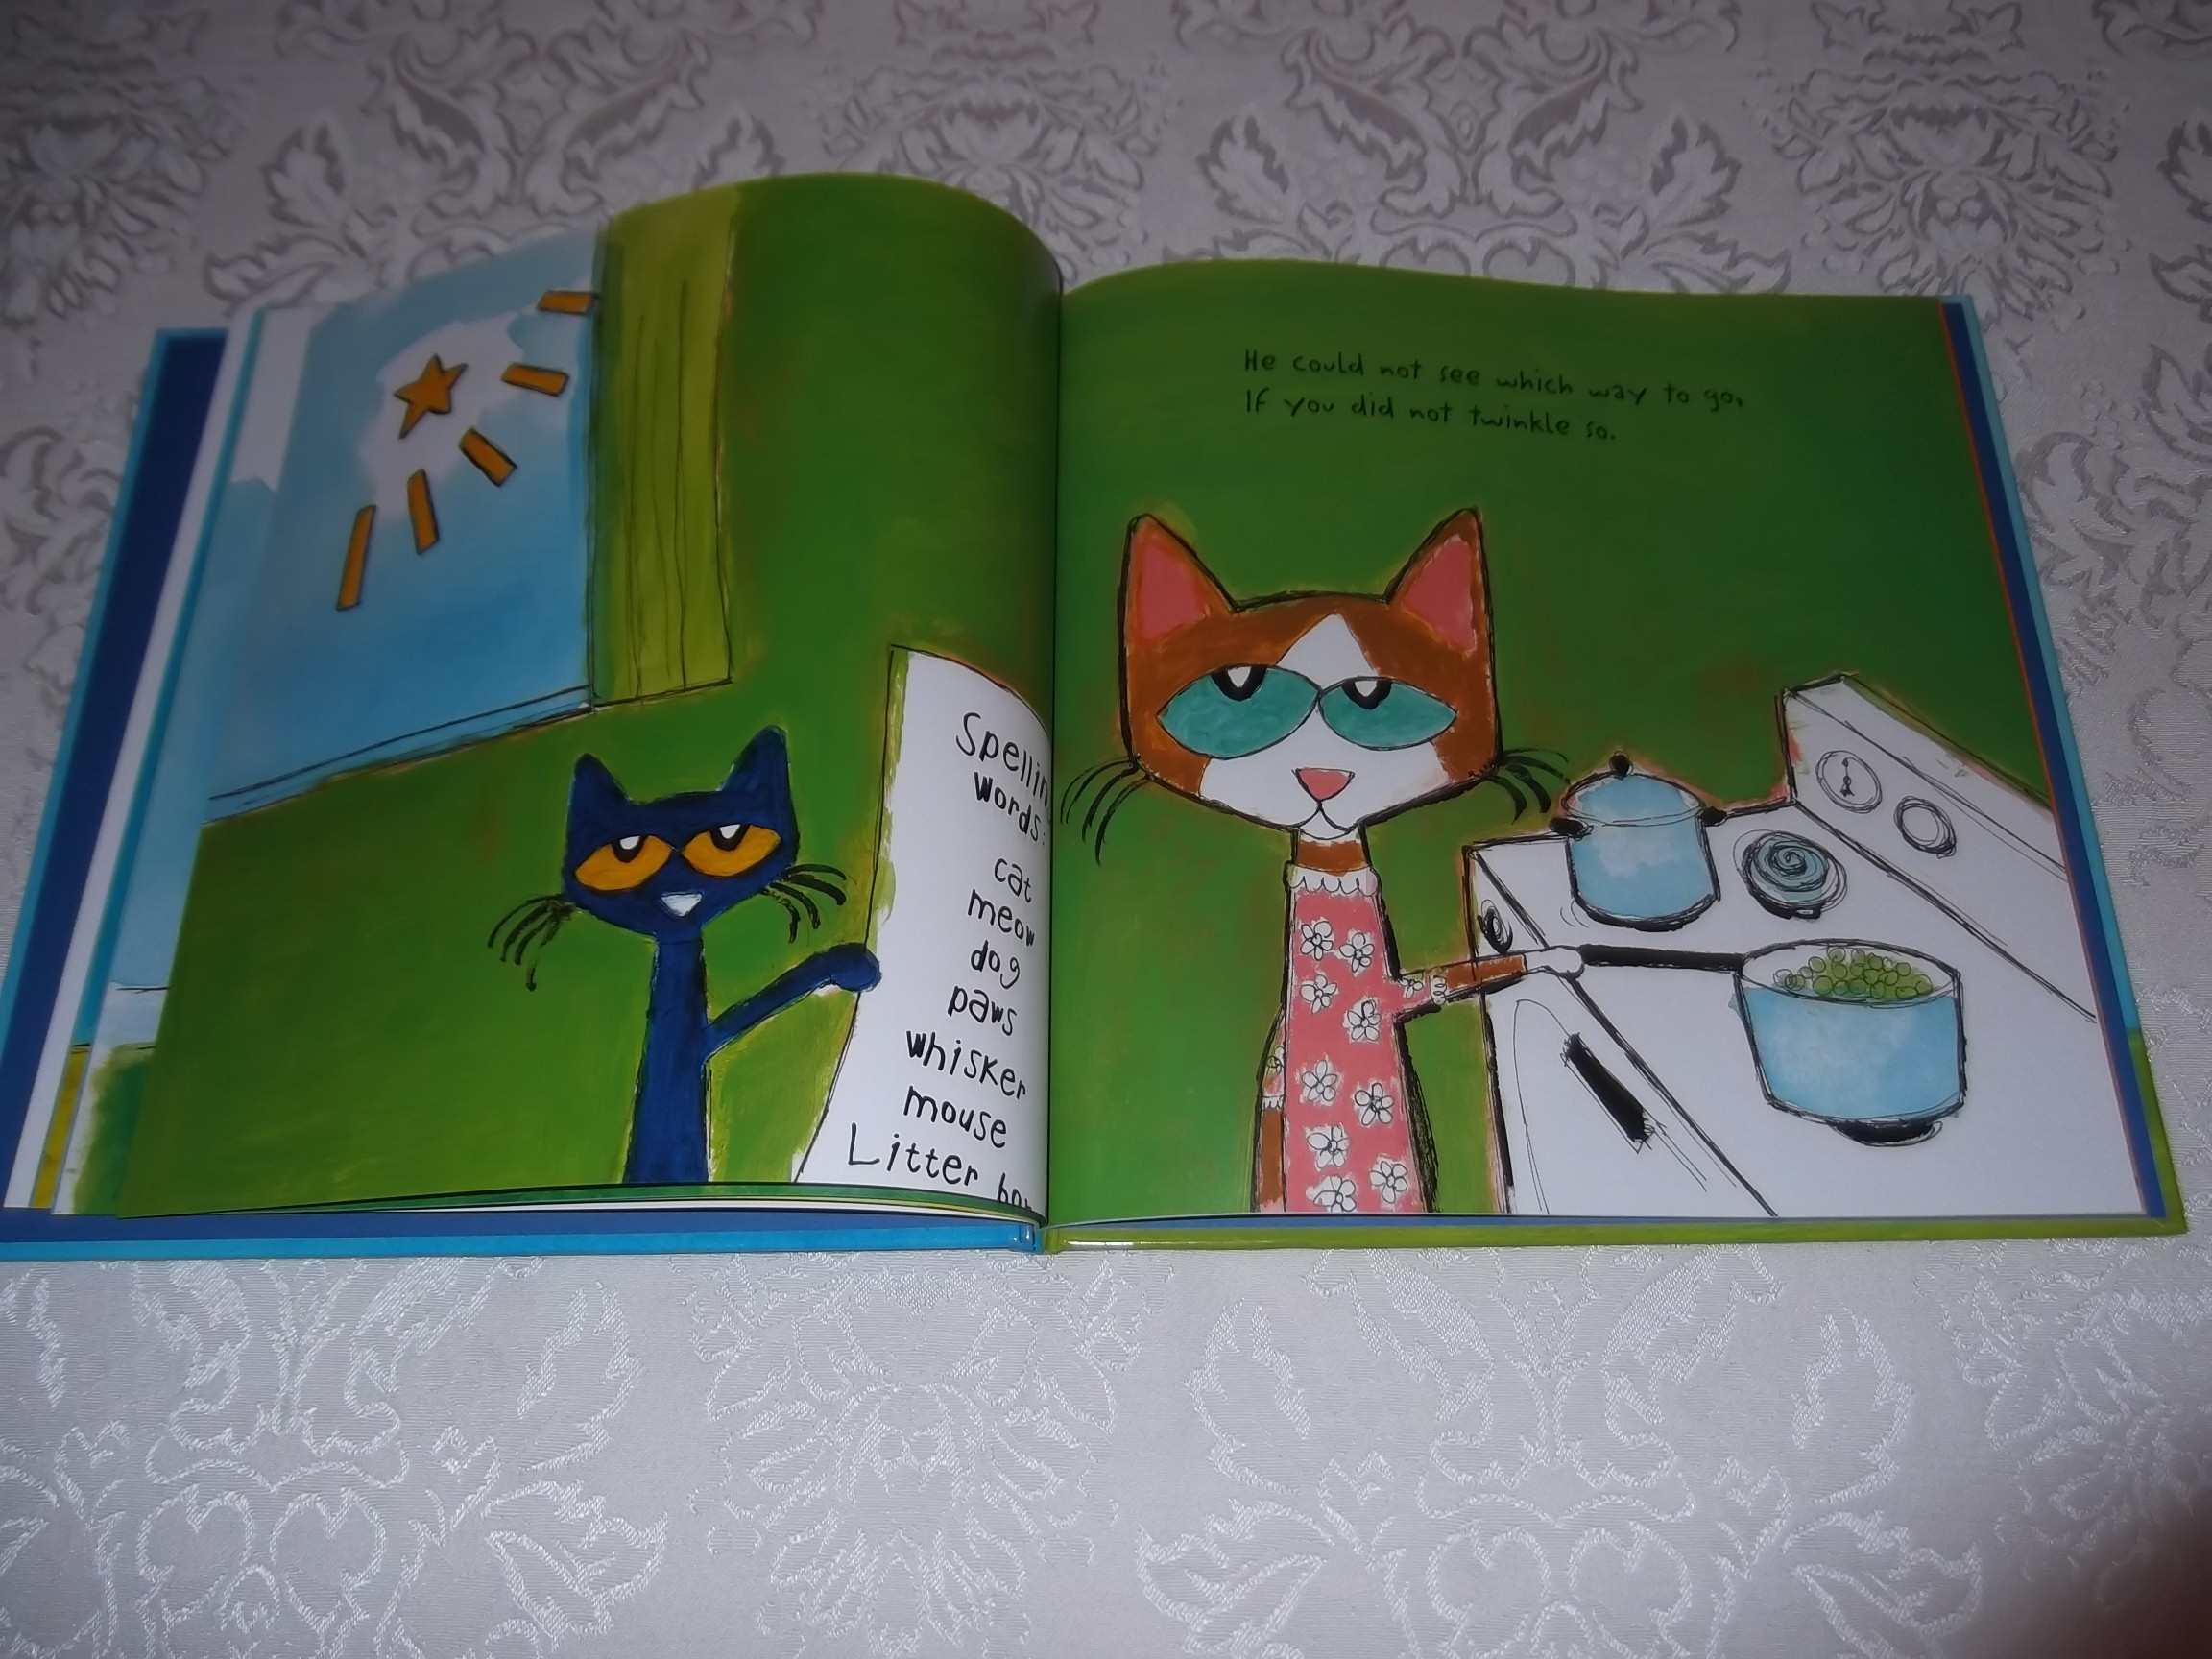 Image 9 of Pete the Cat Twinkle, Twinkle, Little Star James Dean Brand New HC